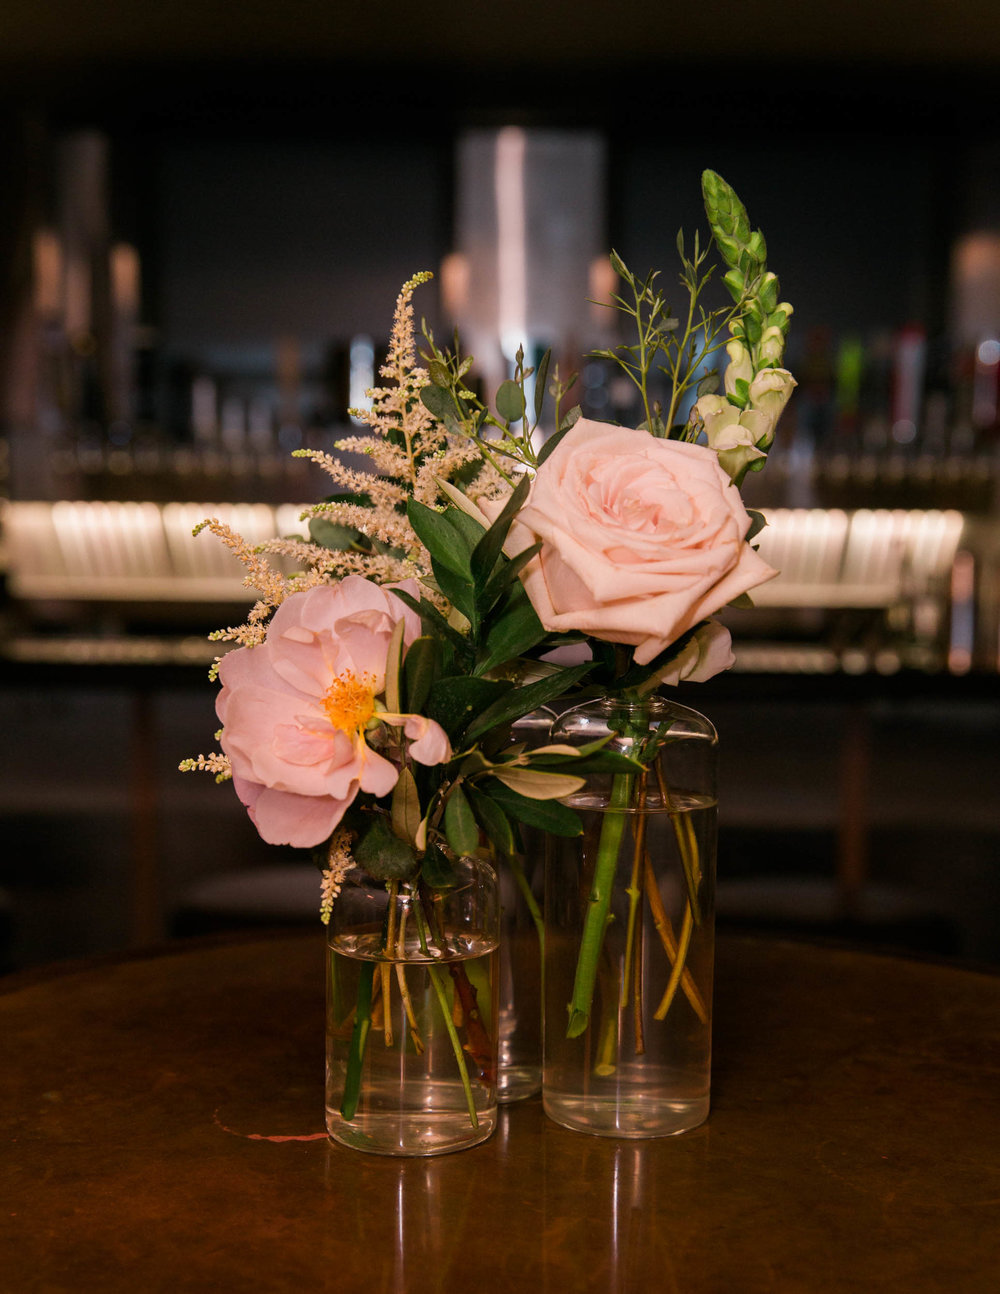 Chicago Wedding - Bud Vase Centerpiece